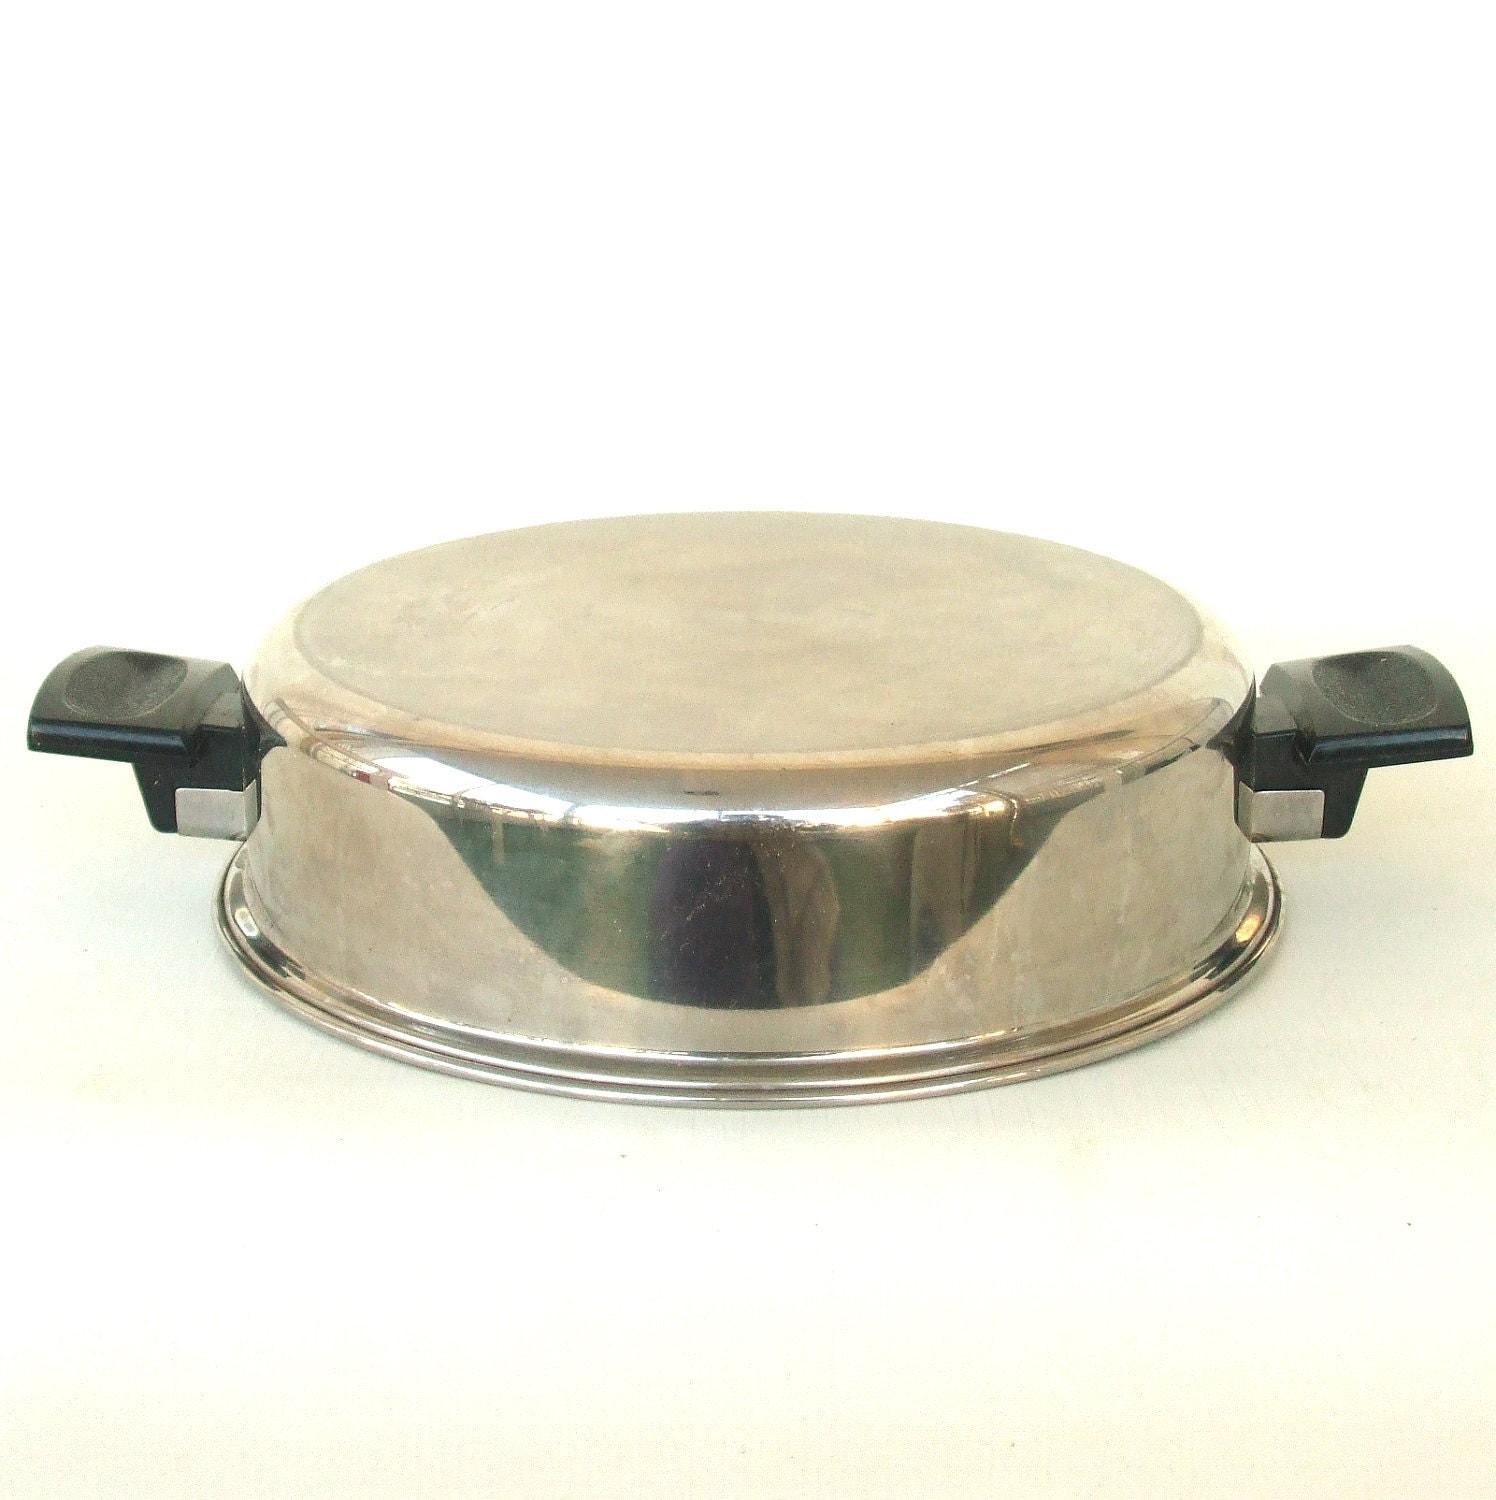 Stainless Waterless Cookware Dome Lid For Dutch By